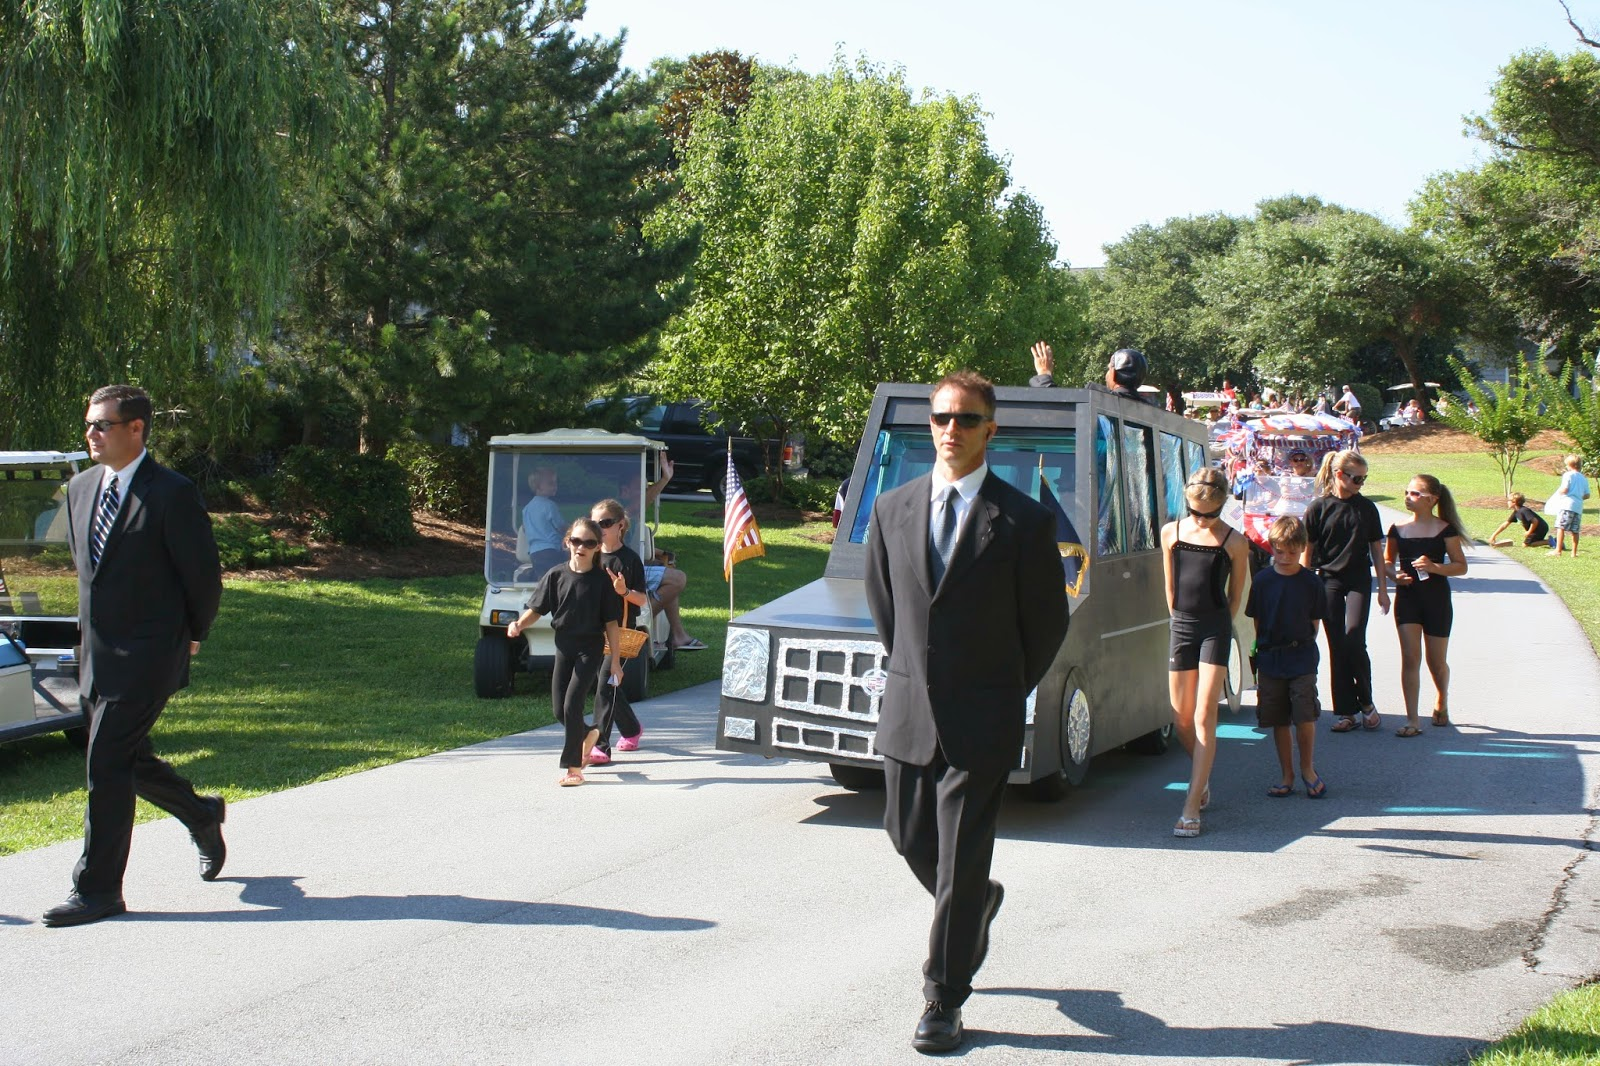 Stars in Stripes in a Golf Cart Parade | The Musings of a TGtM ... on